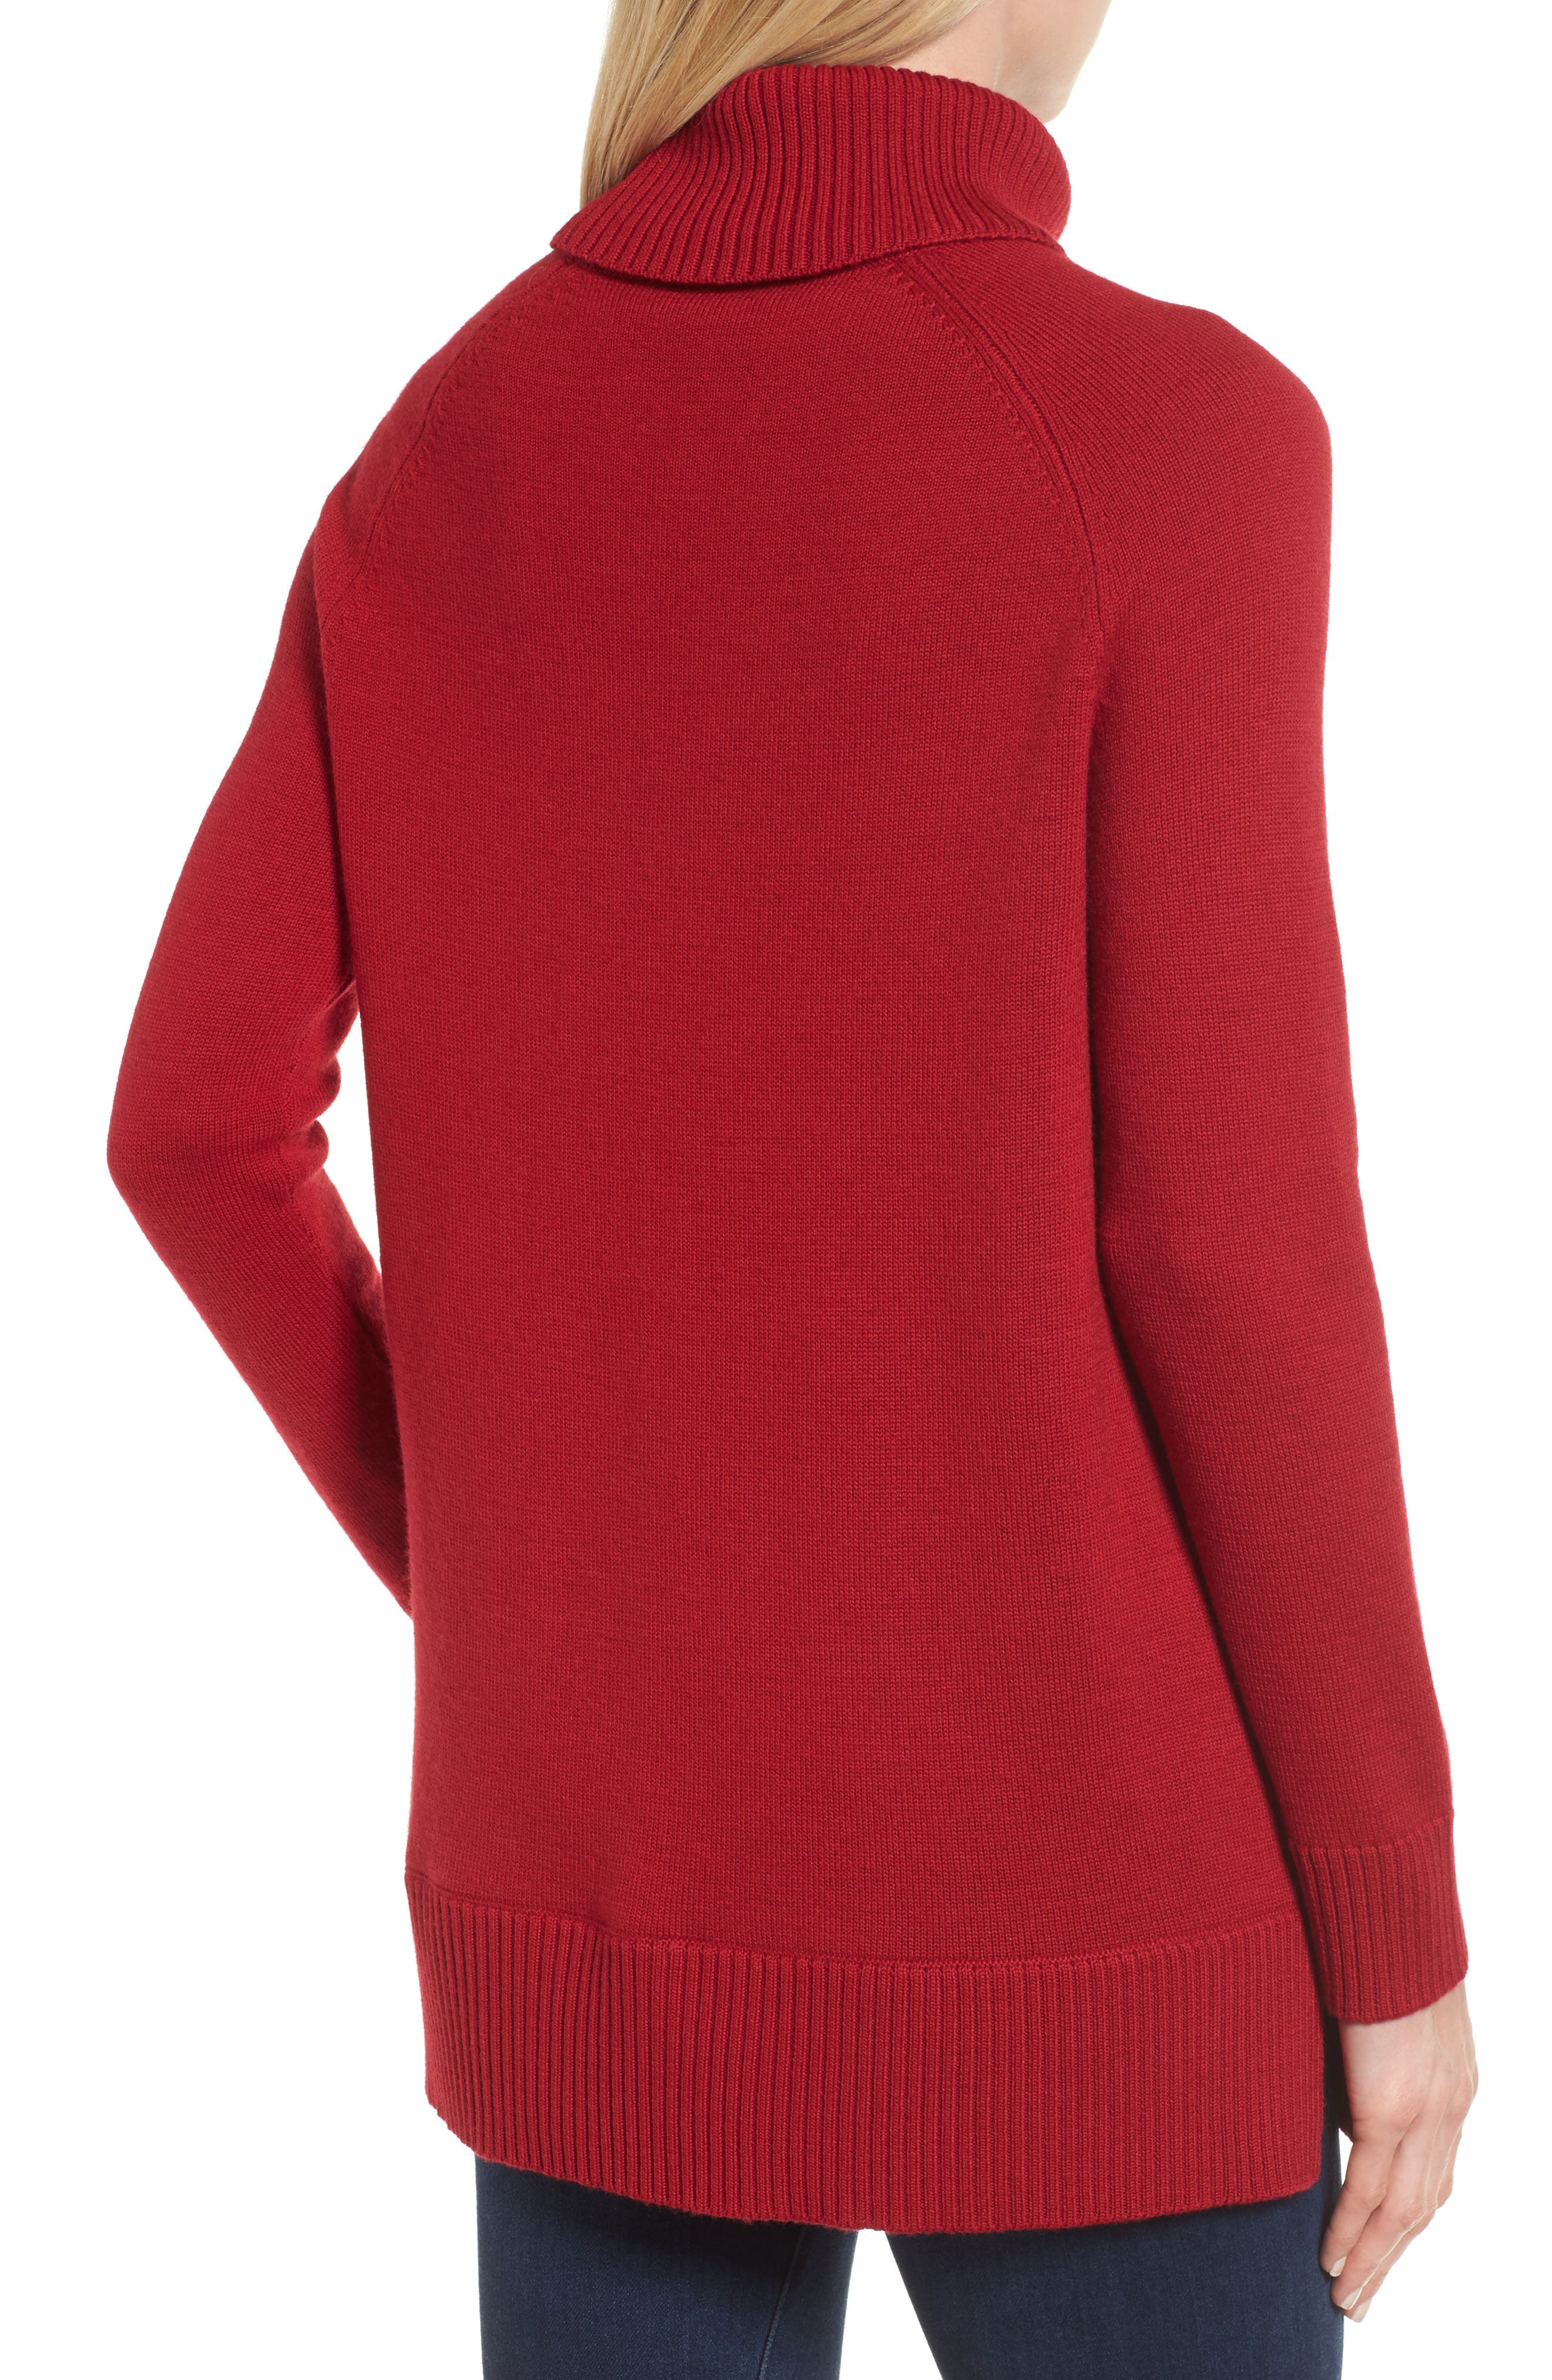 Tessa Turtleneck Wool Maternity Sweater,                             Alternate thumbnail 2, color,                             Cardamom Red